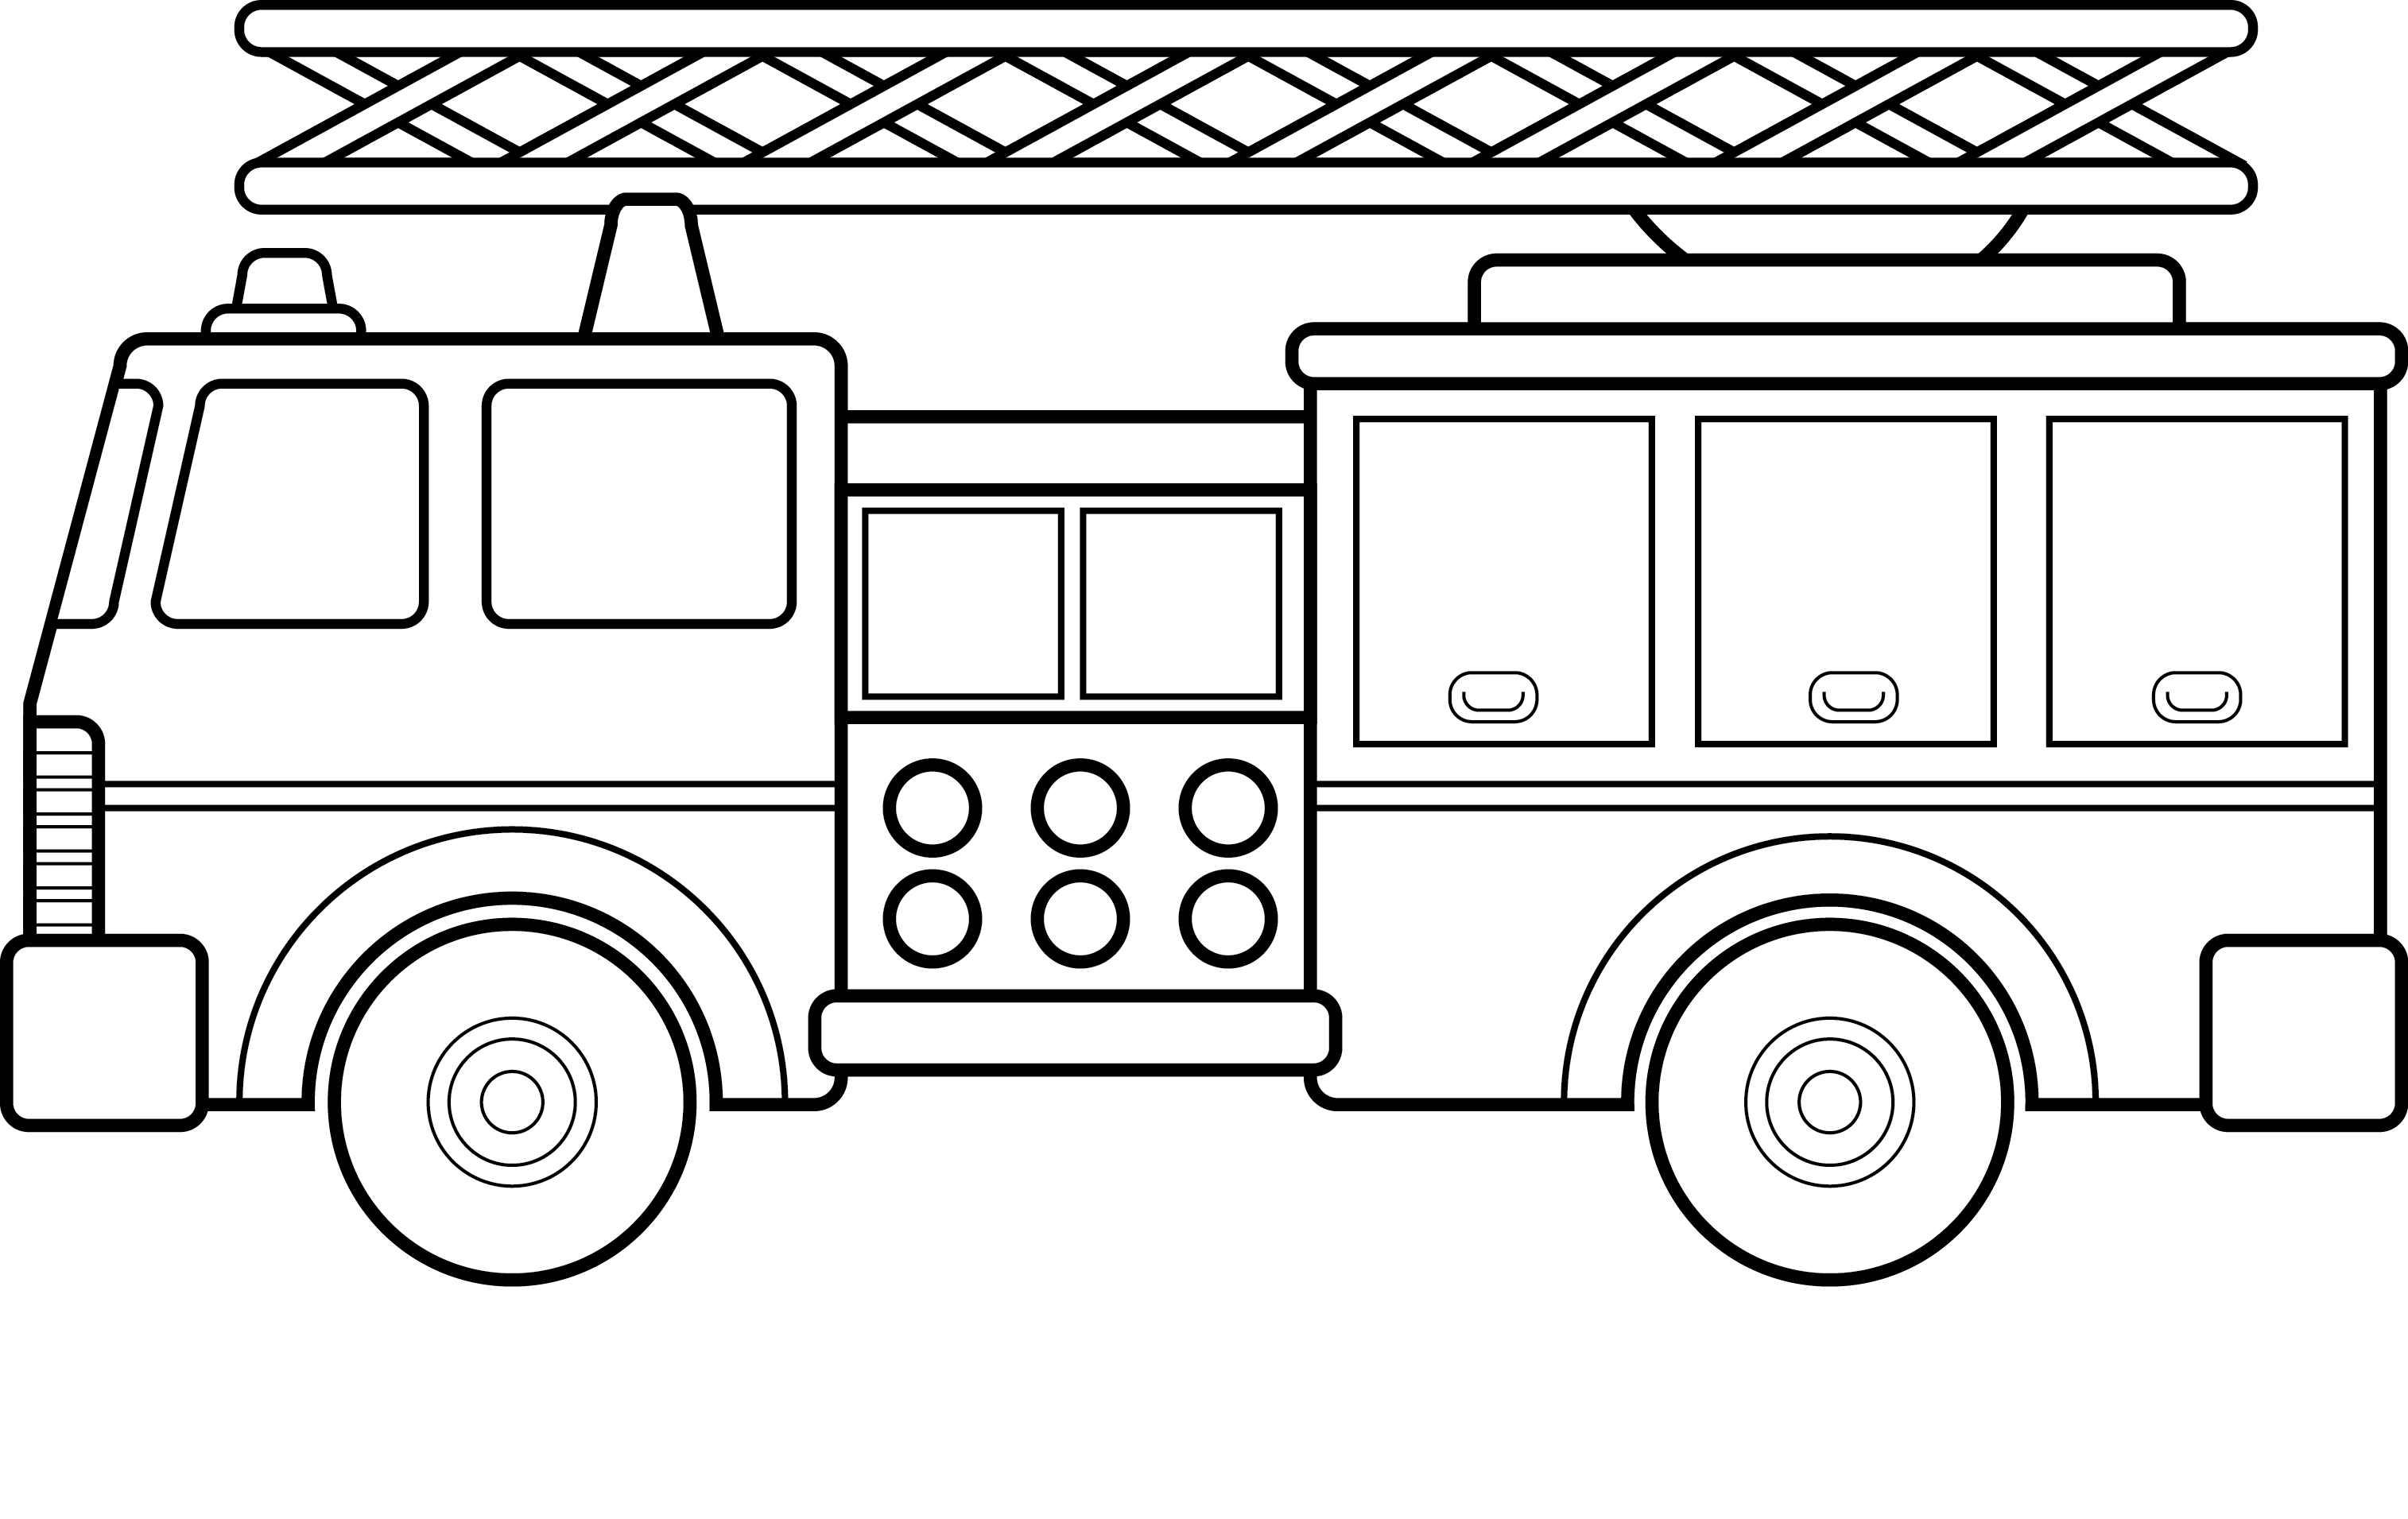 Coloring Pages Fire Truck Free Printable Fire Truck Coloring Pages For Kids